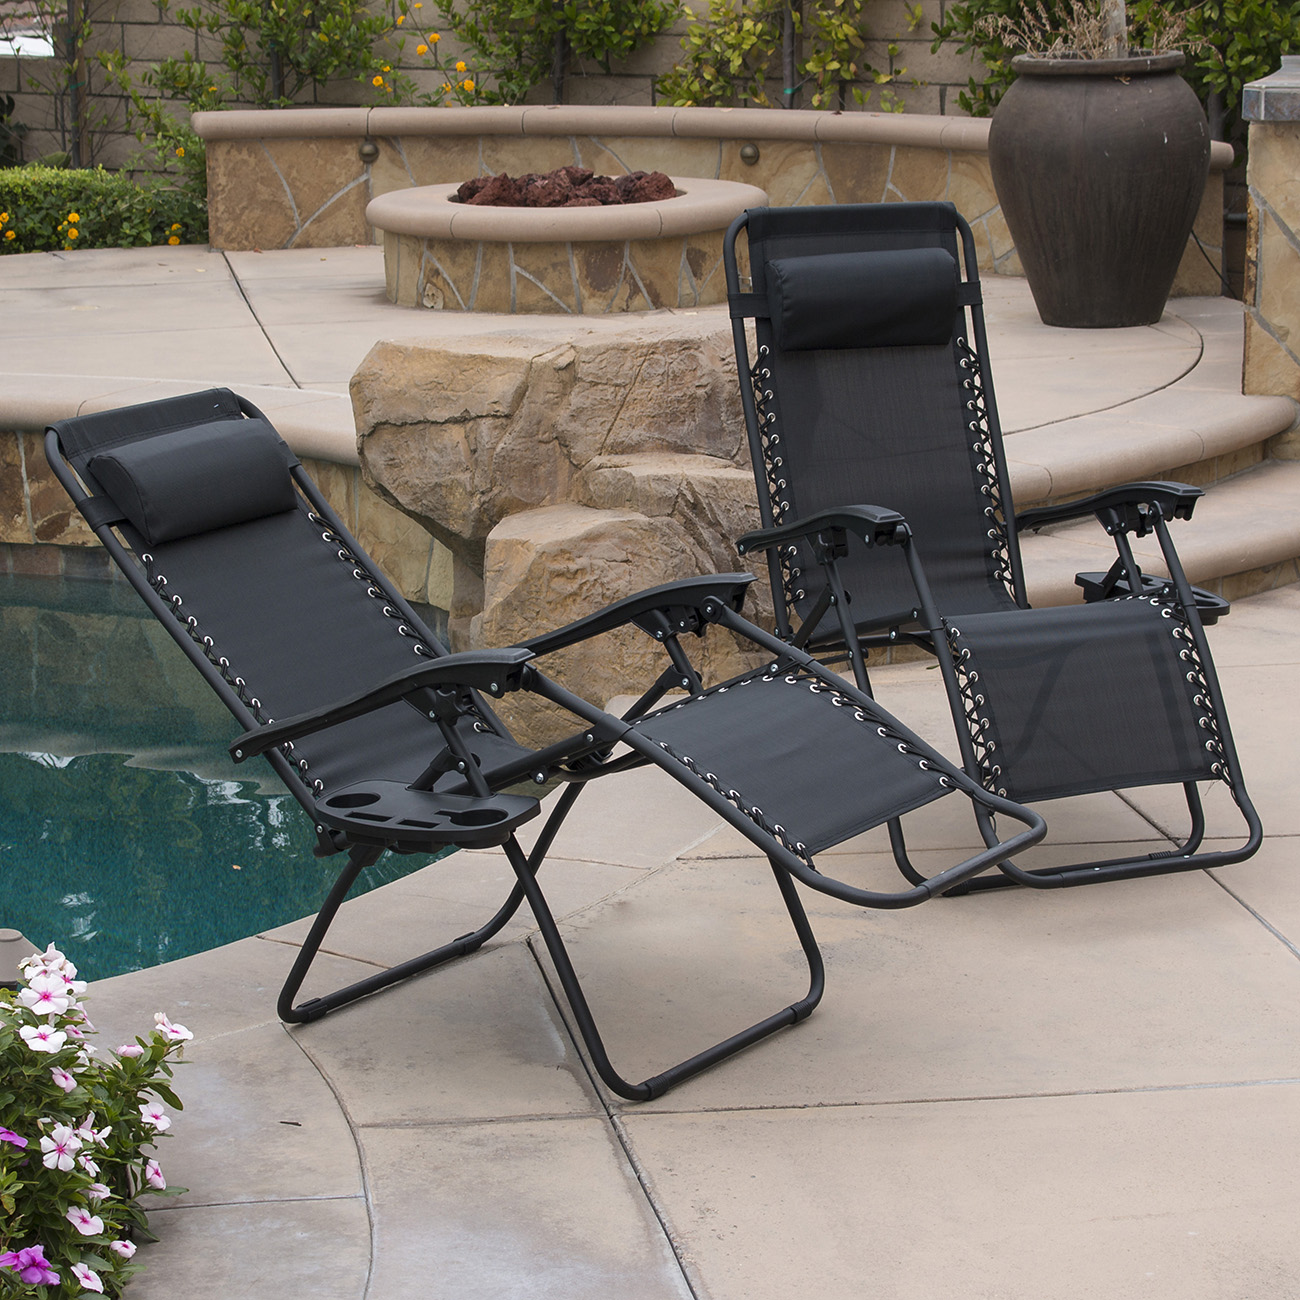 Merveilleux Zero Gravity Lounge Black Patio Chairs Device Slot Cup Holder Utility Tray  Home